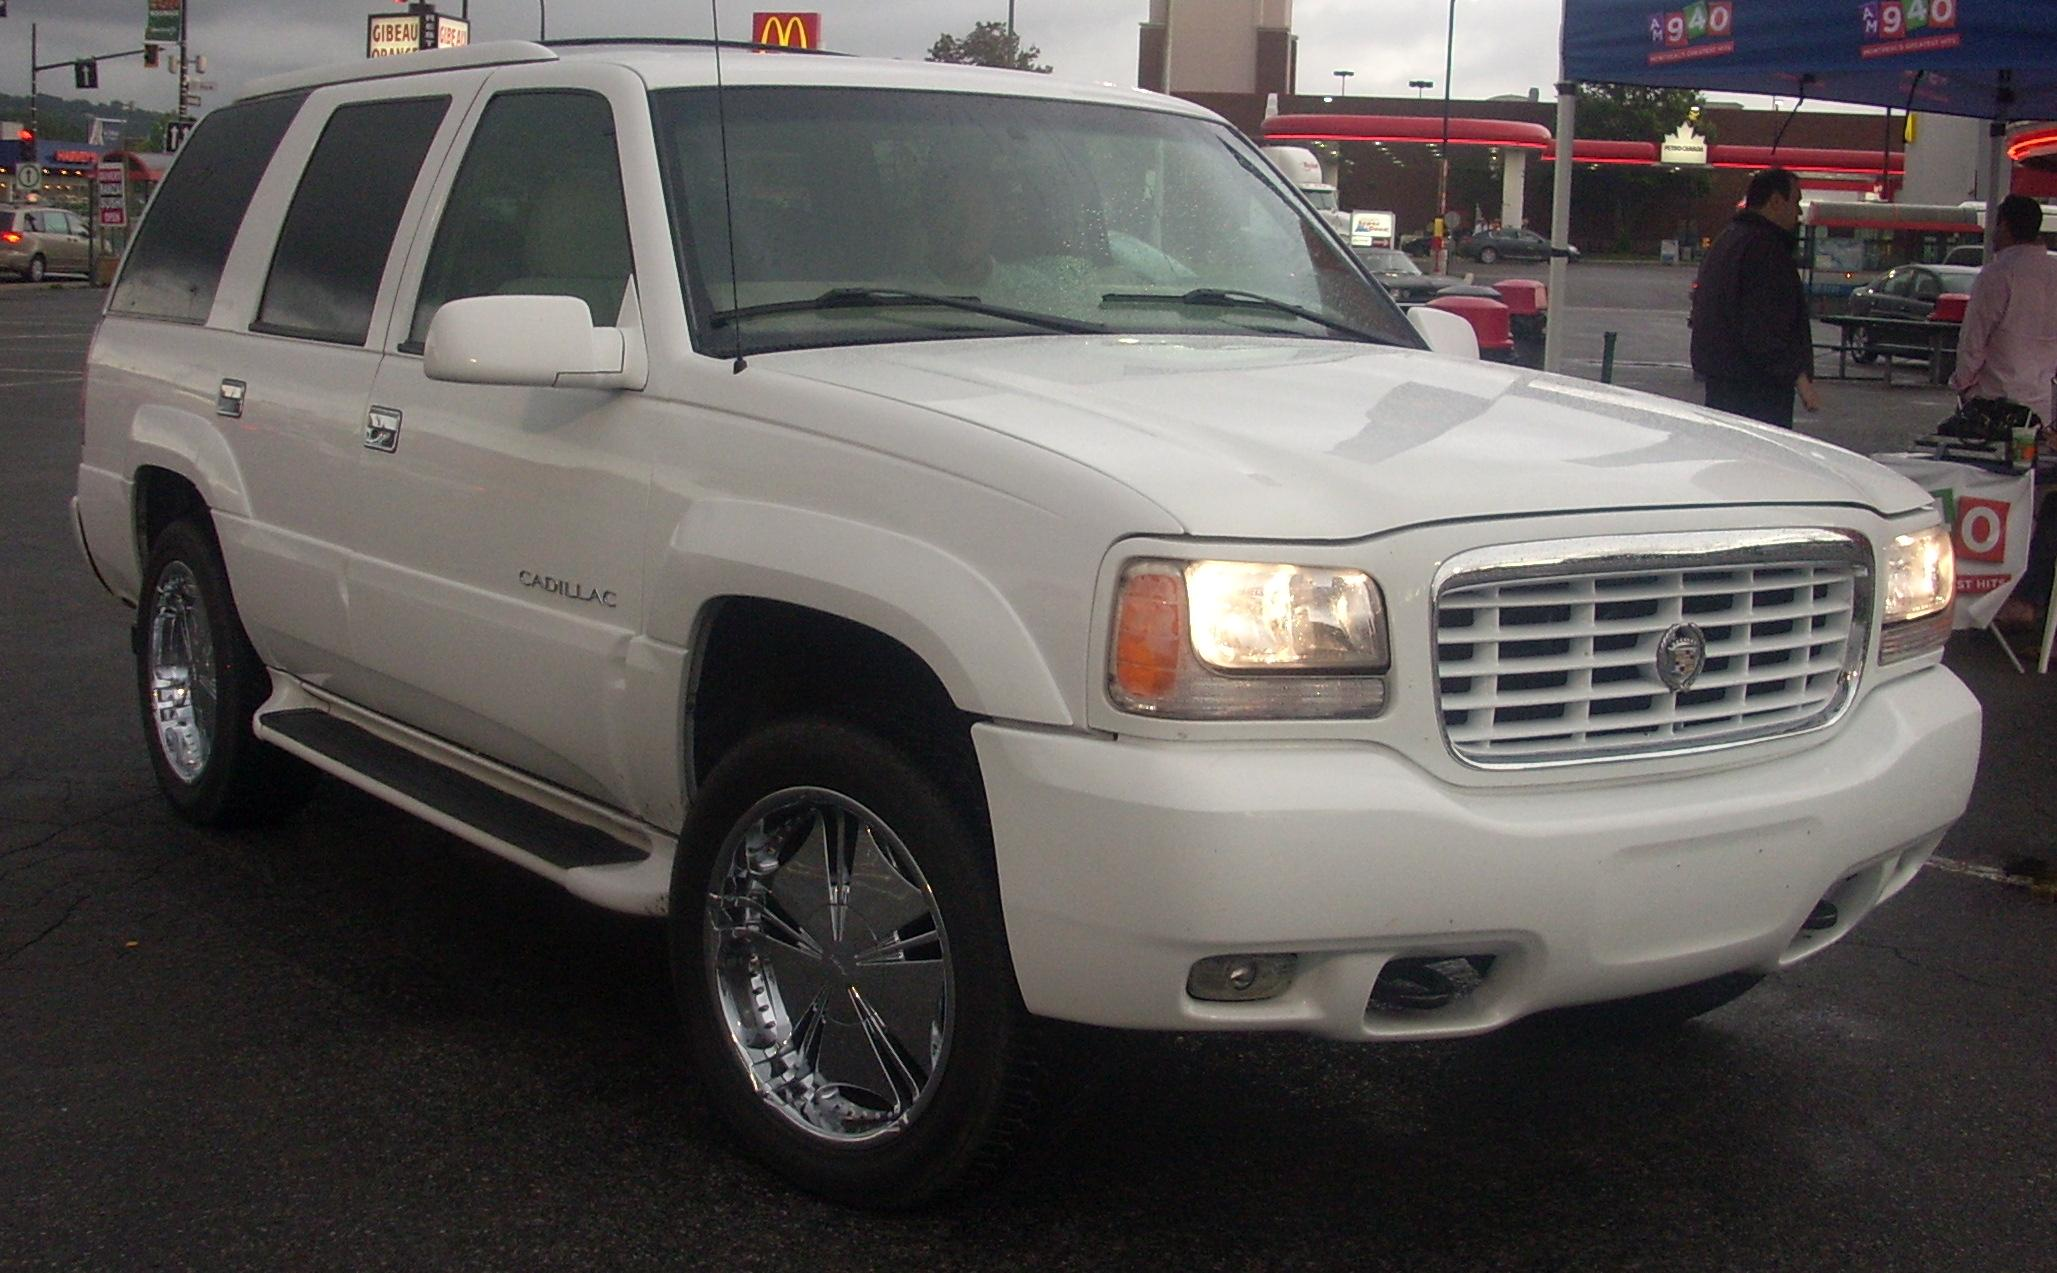 File:Tuned '99-'00 Cadillac Escalade (Orange Julep).JPG - Wikimedia